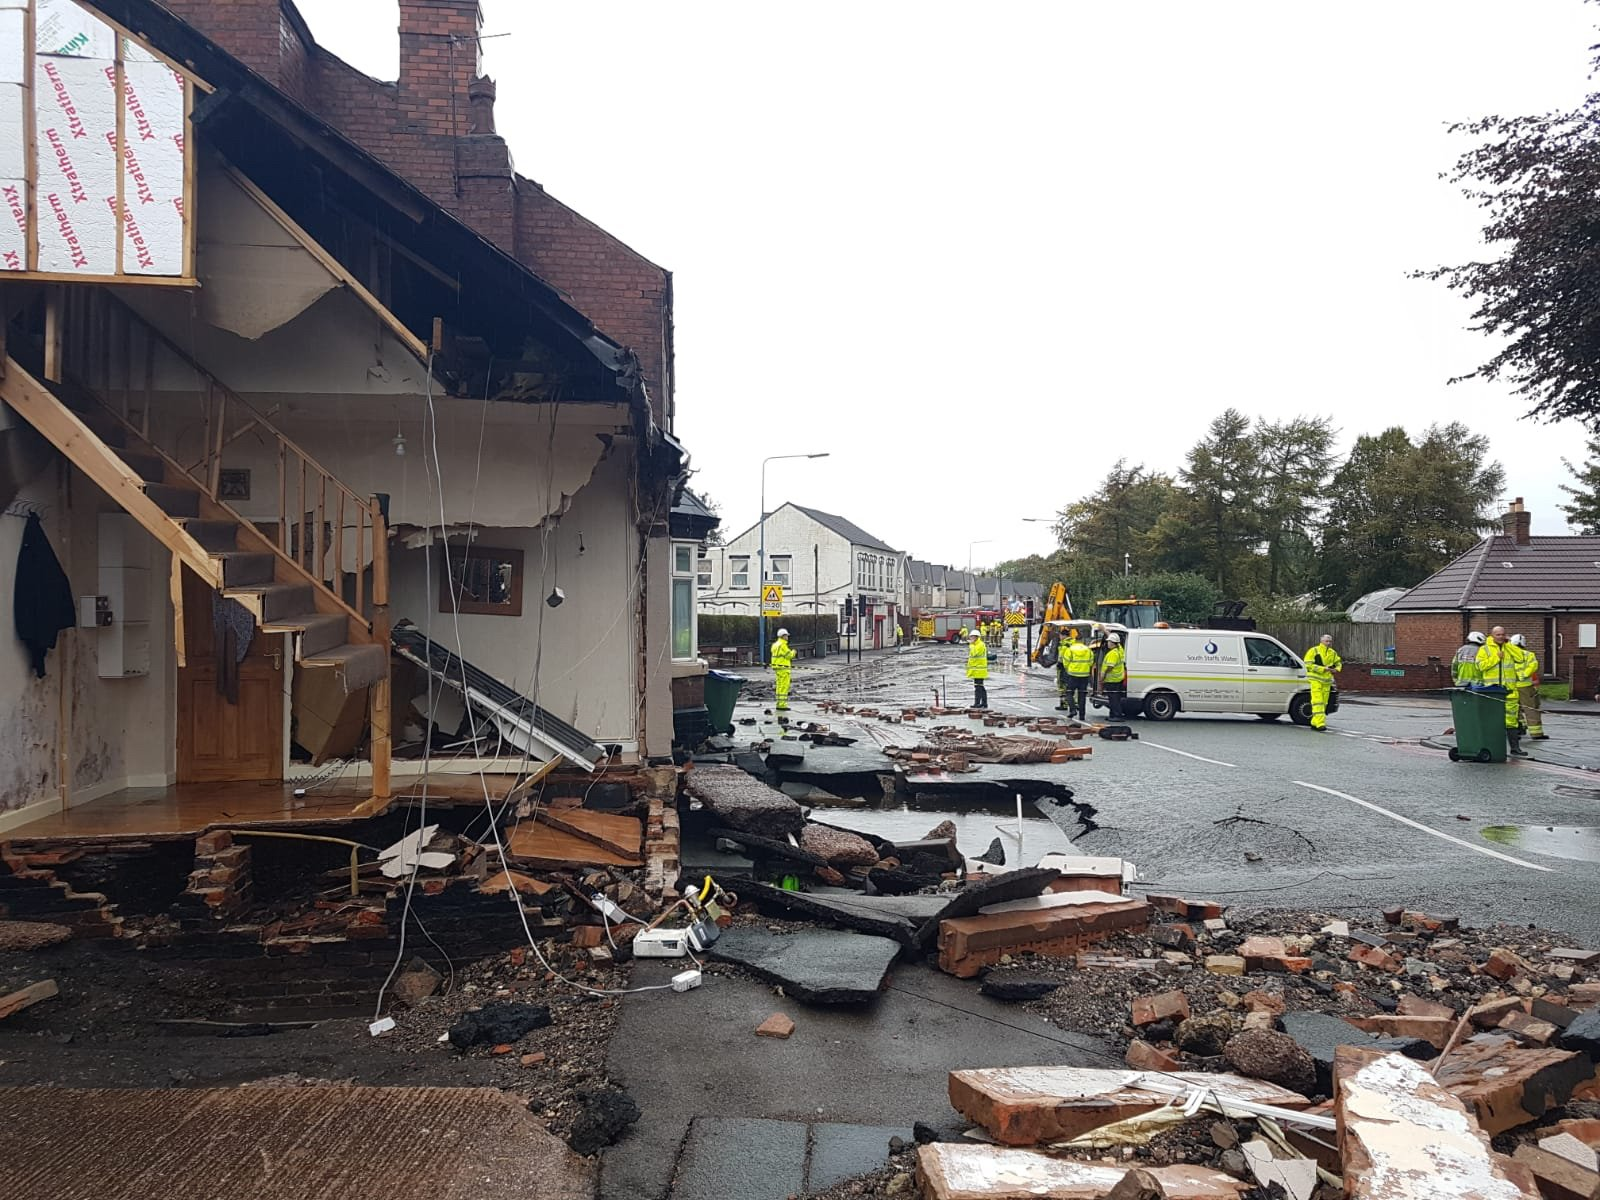 A burst water main has caused damage in Birmingham, where a house has partially collapsed (West Midlands Fire Service/PA)